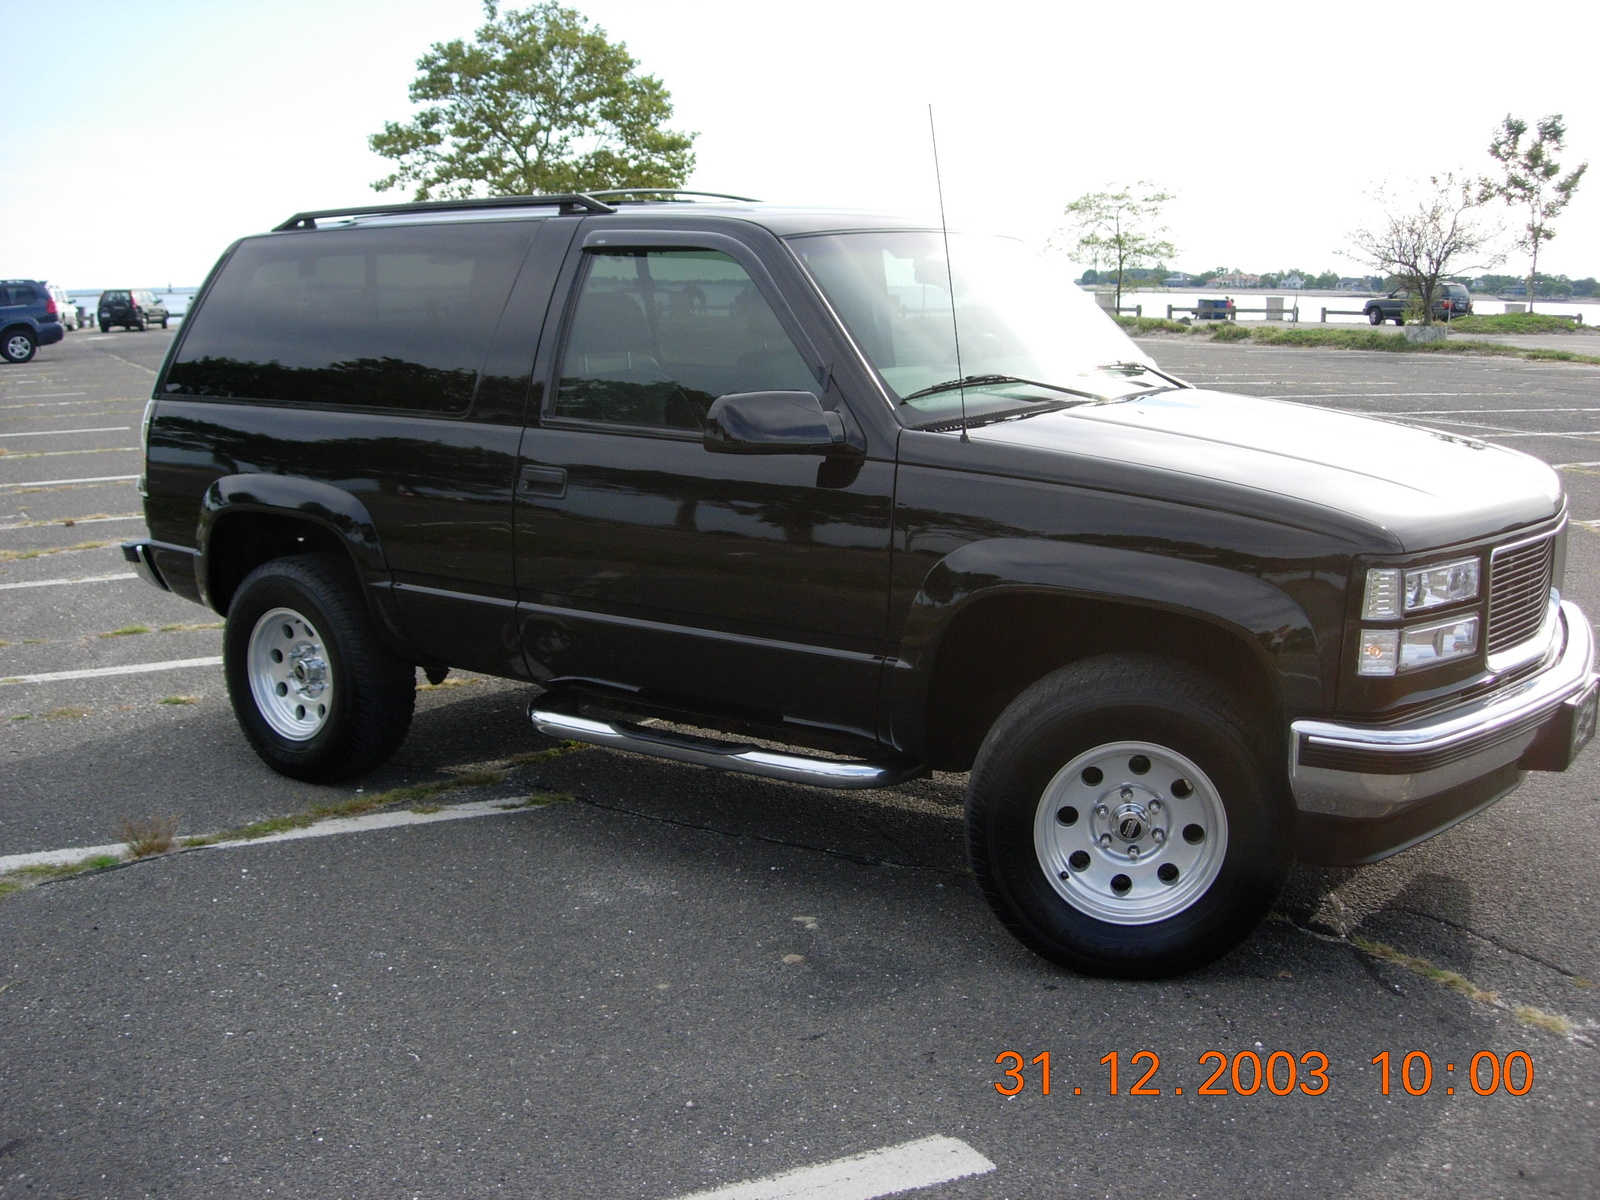 pin 1998 chevy tahoe 4x4 z71 4 door in coldwater michigan for sale on pinterest. Black Bedroom Furniture Sets. Home Design Ideas